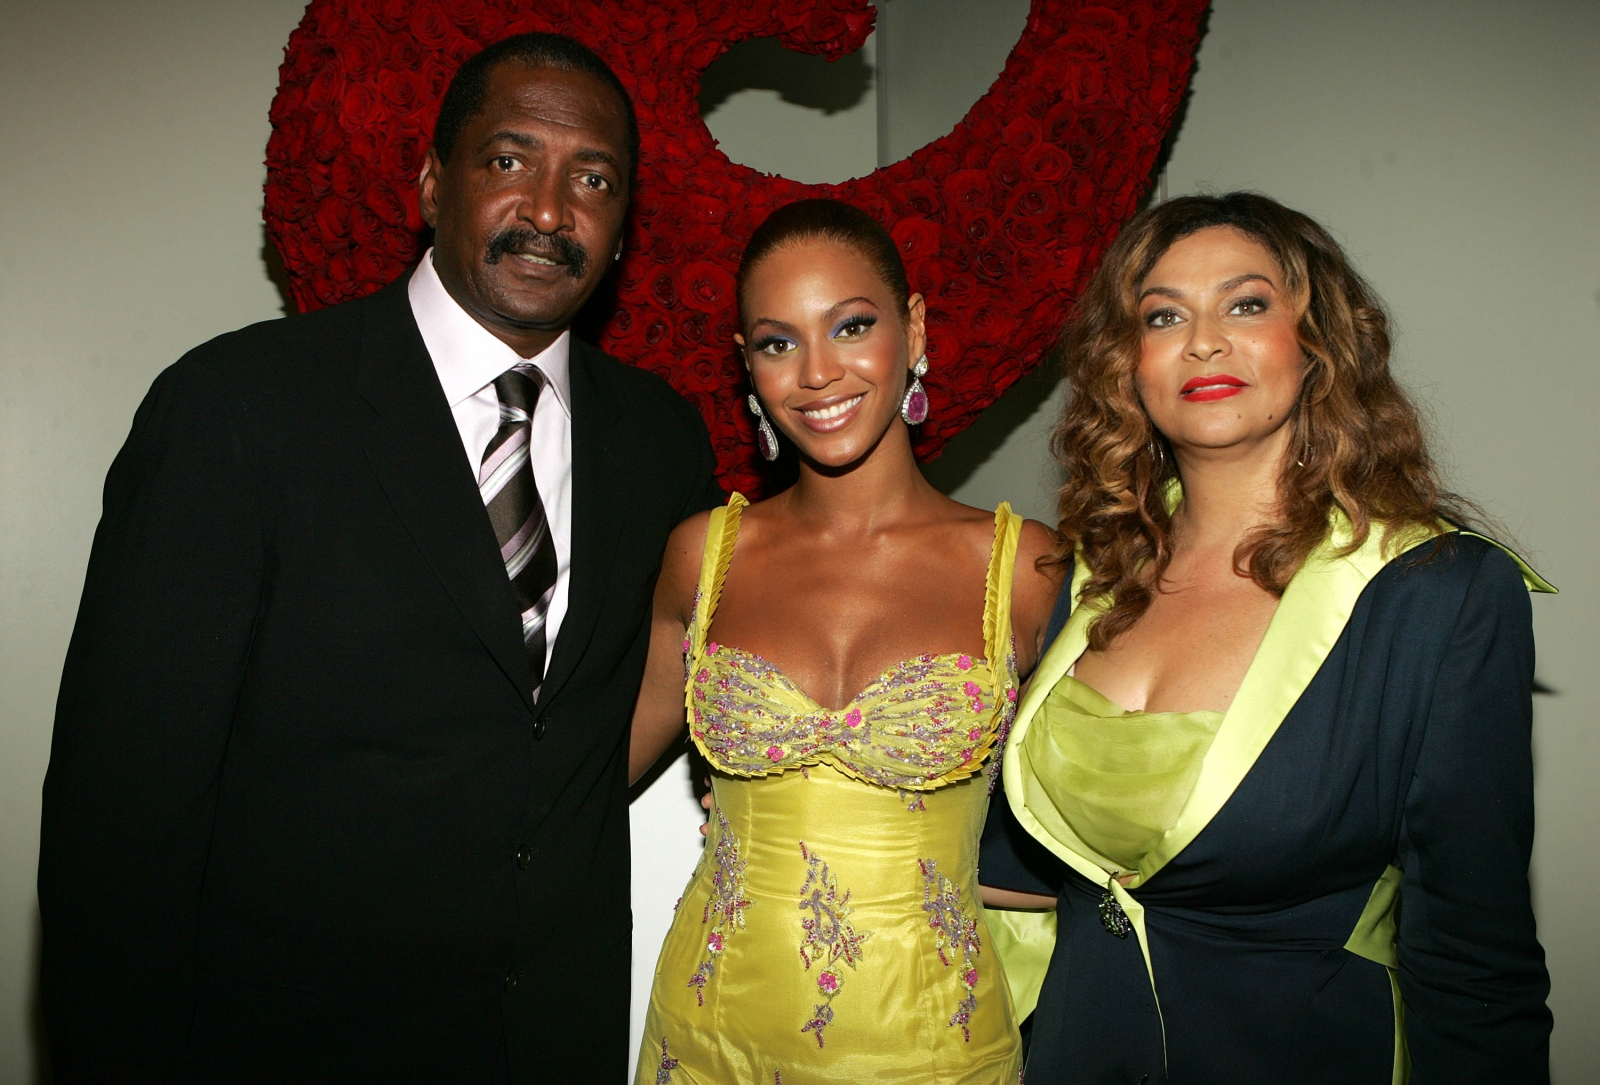 Beyonce's dad says her career was boosted by her light skin